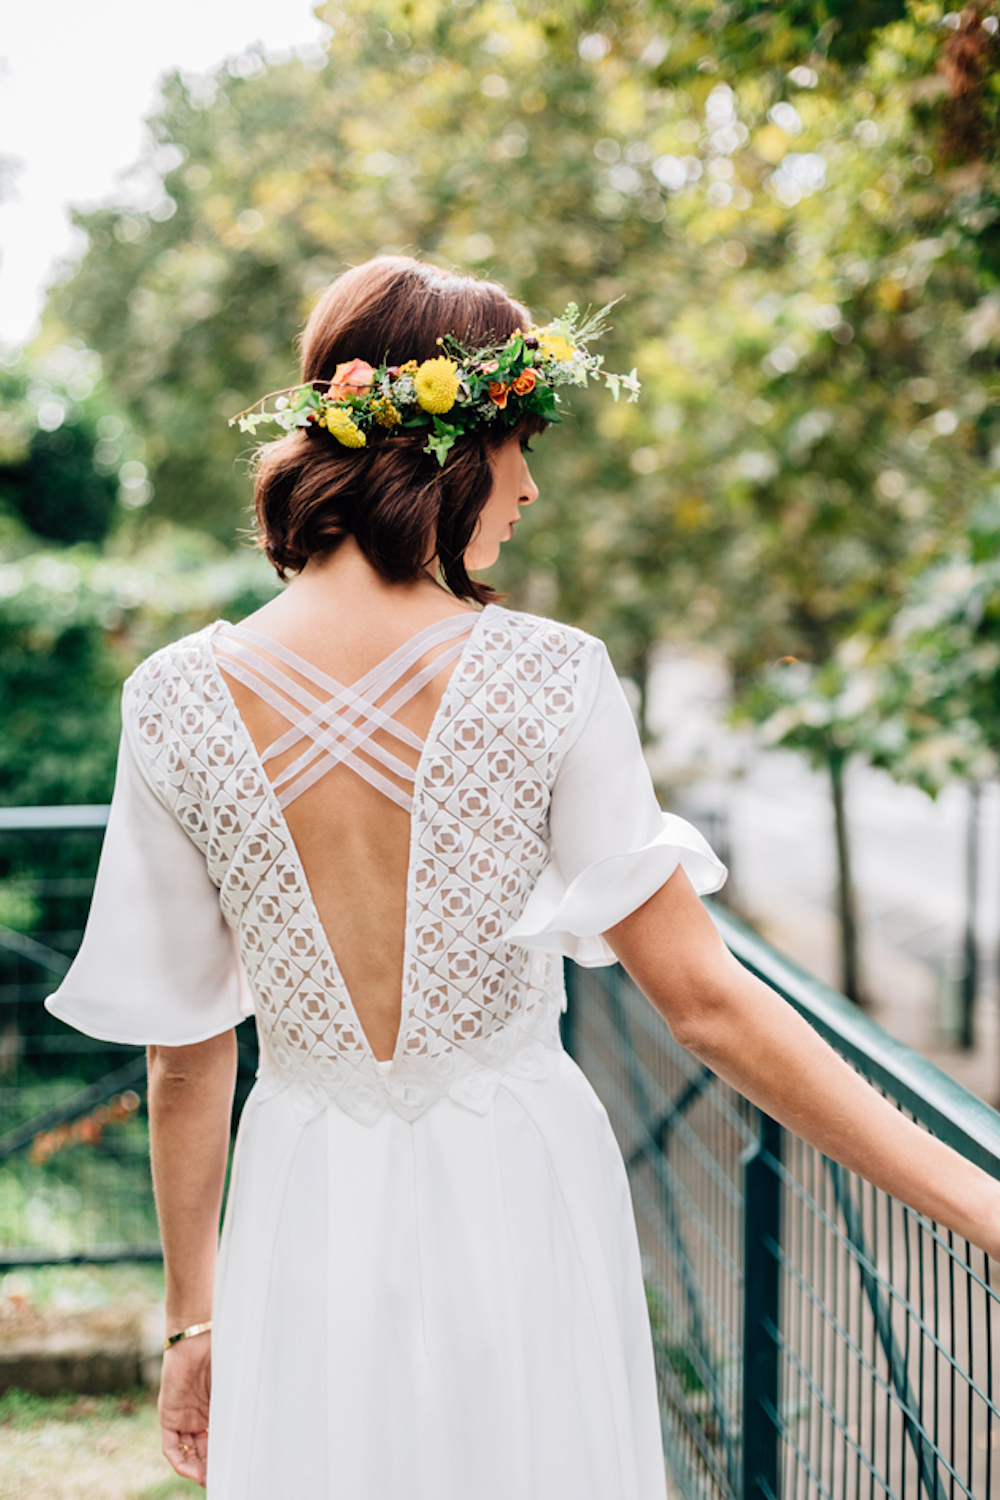 parisian-inspired-blog-mariagepierreatelier-photographe-mariage-paris-184.jpg